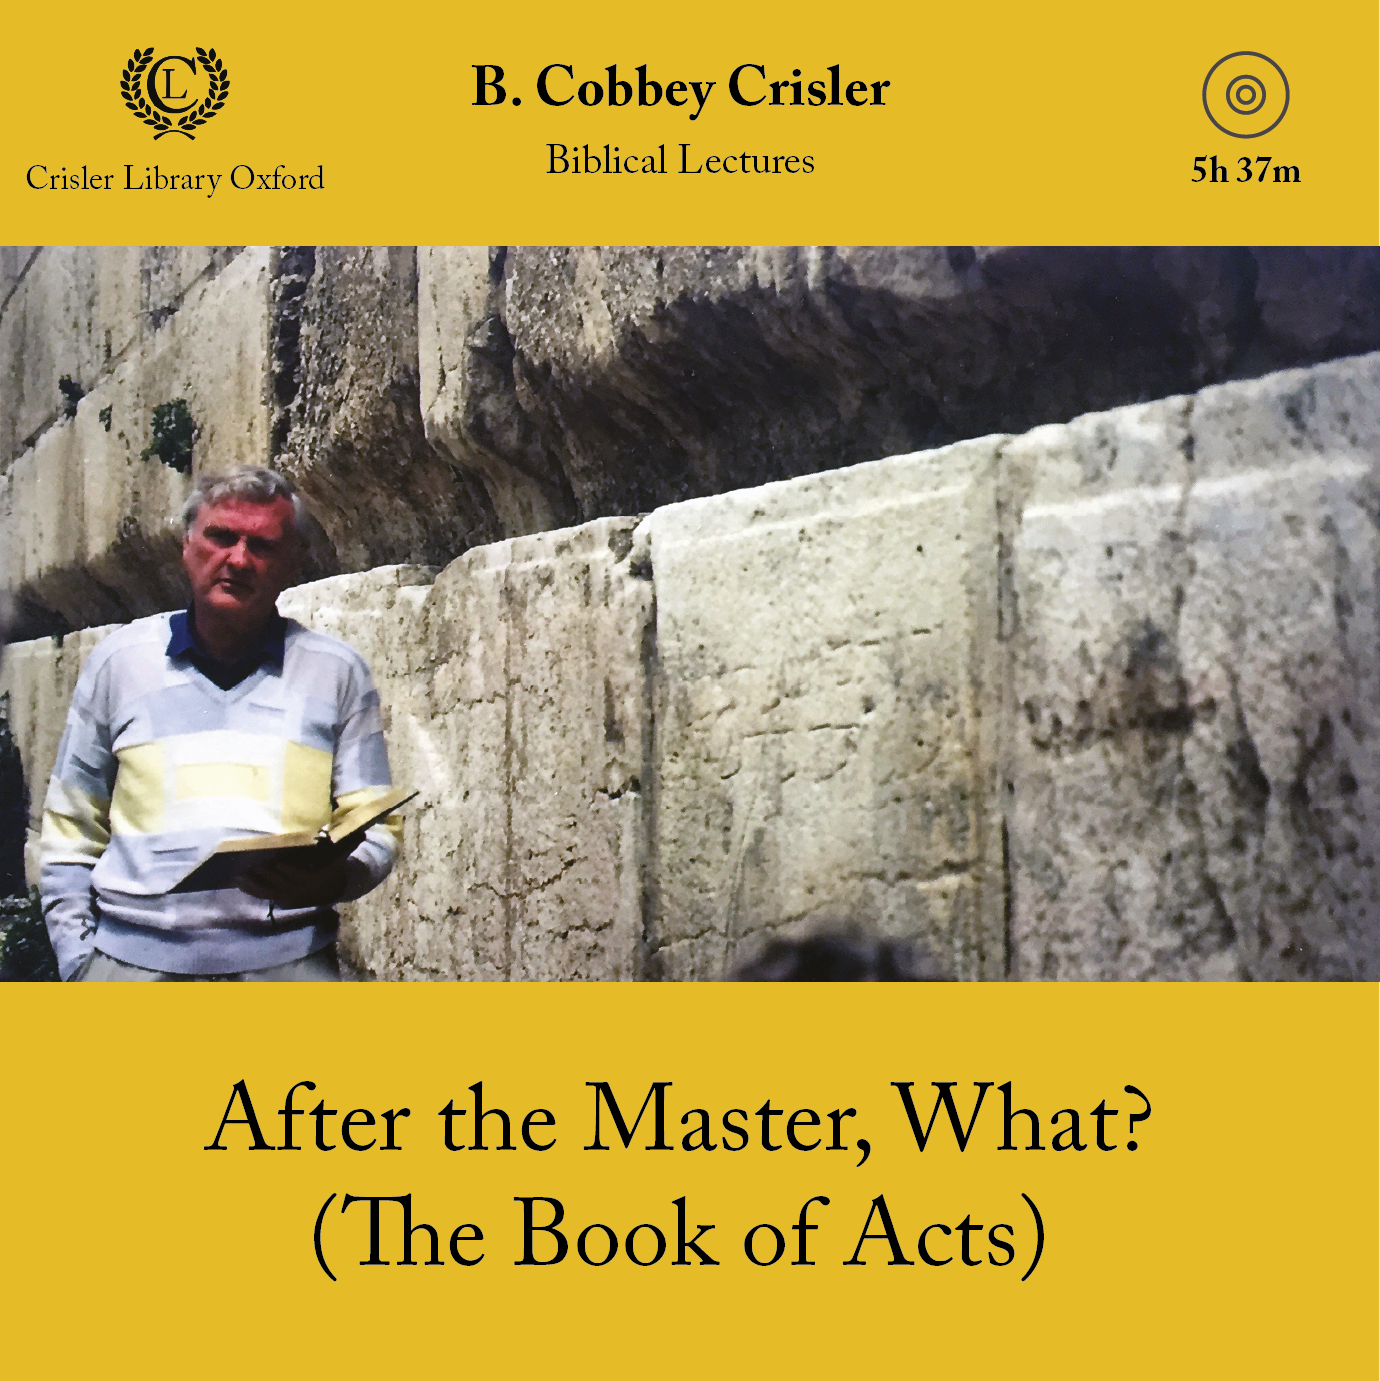 After the Master, What? (The Book of Acts)